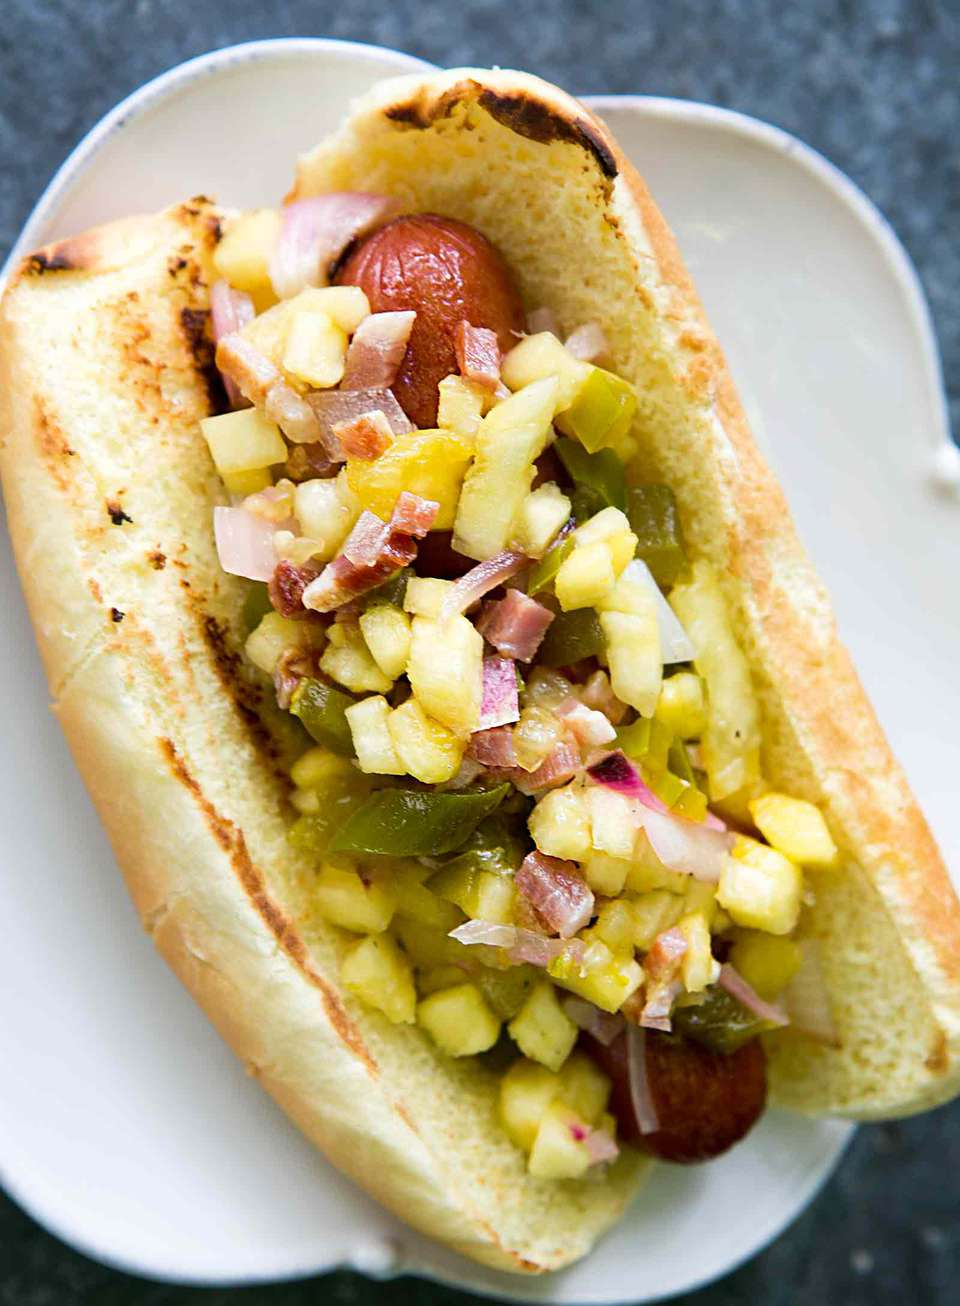 Hot Dog with Pineapple Bacon Relish